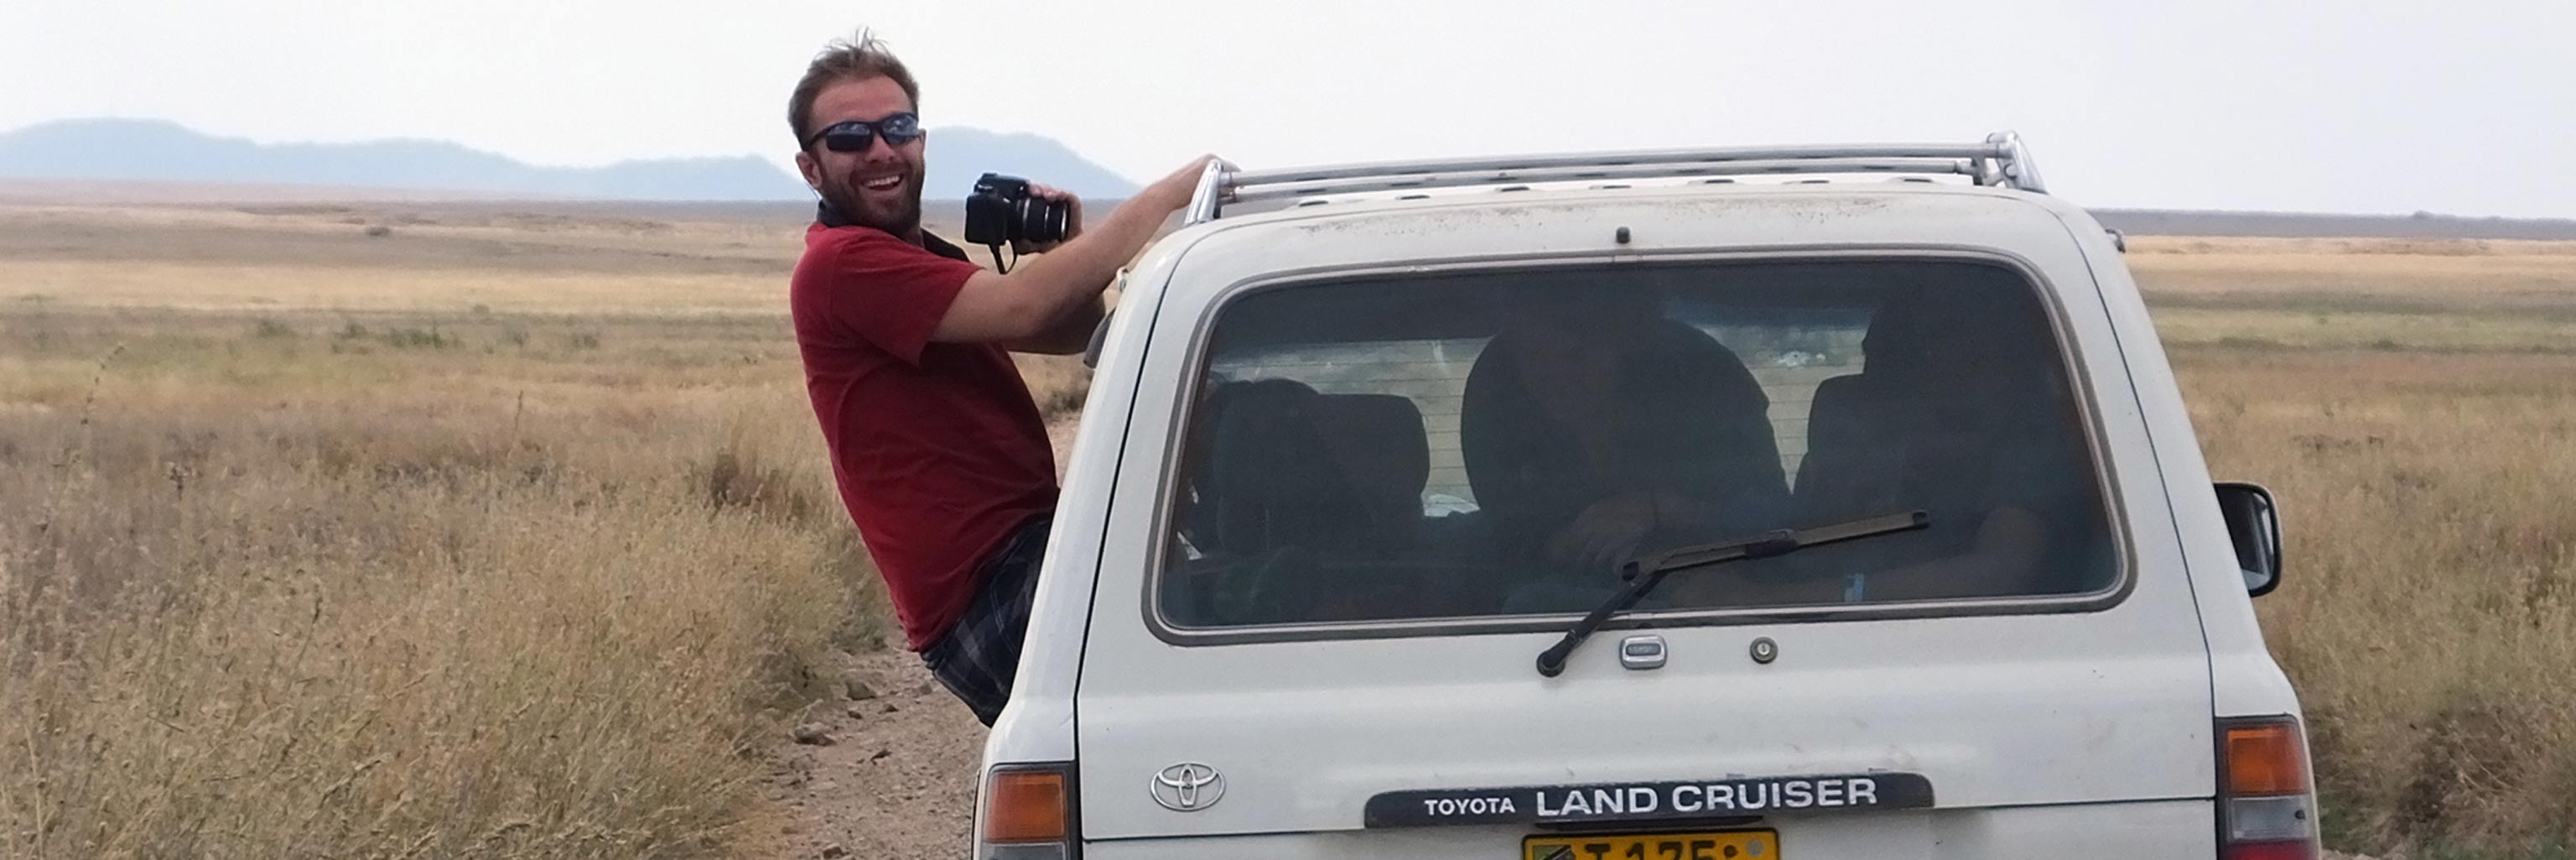 Student leaning out of a vehicle to take photos for field research